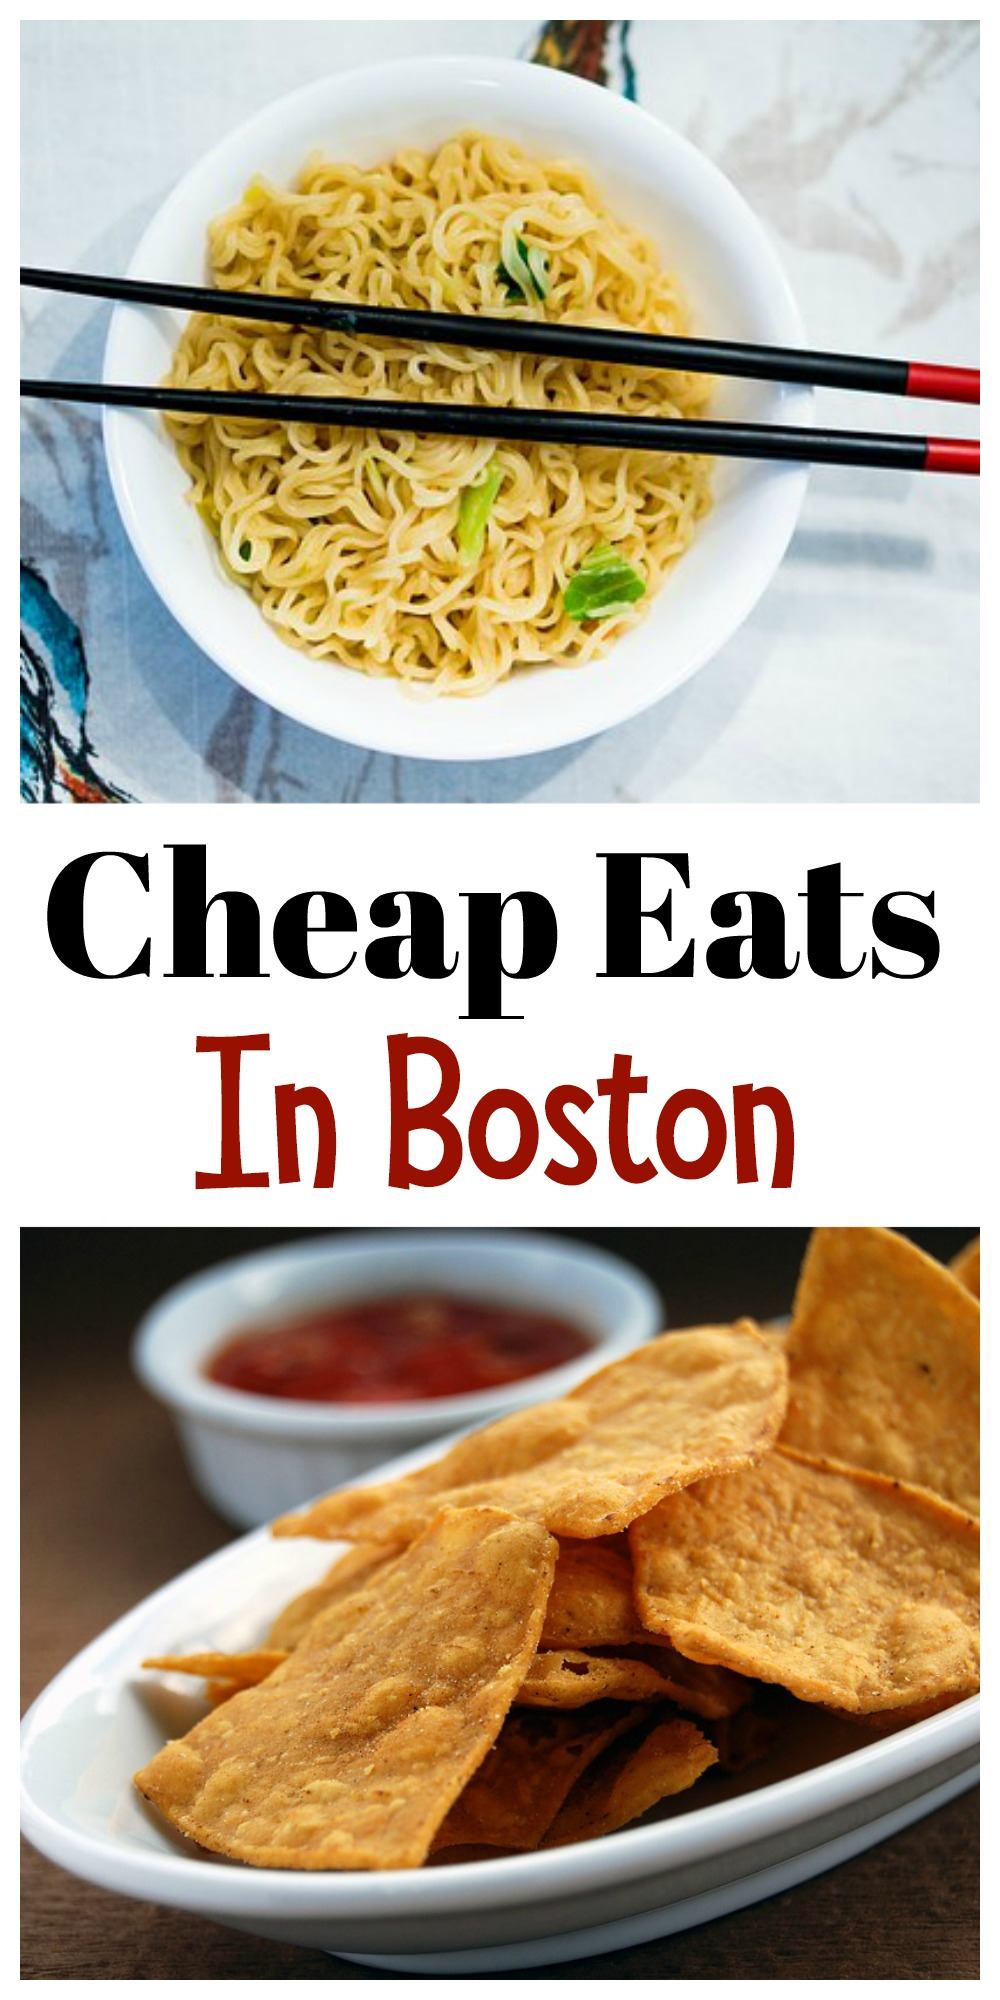 If you are looking for cheap eats in Boston, here are six of the best places to get some grub. Your tummy will be happy and your wallet will be lighter.